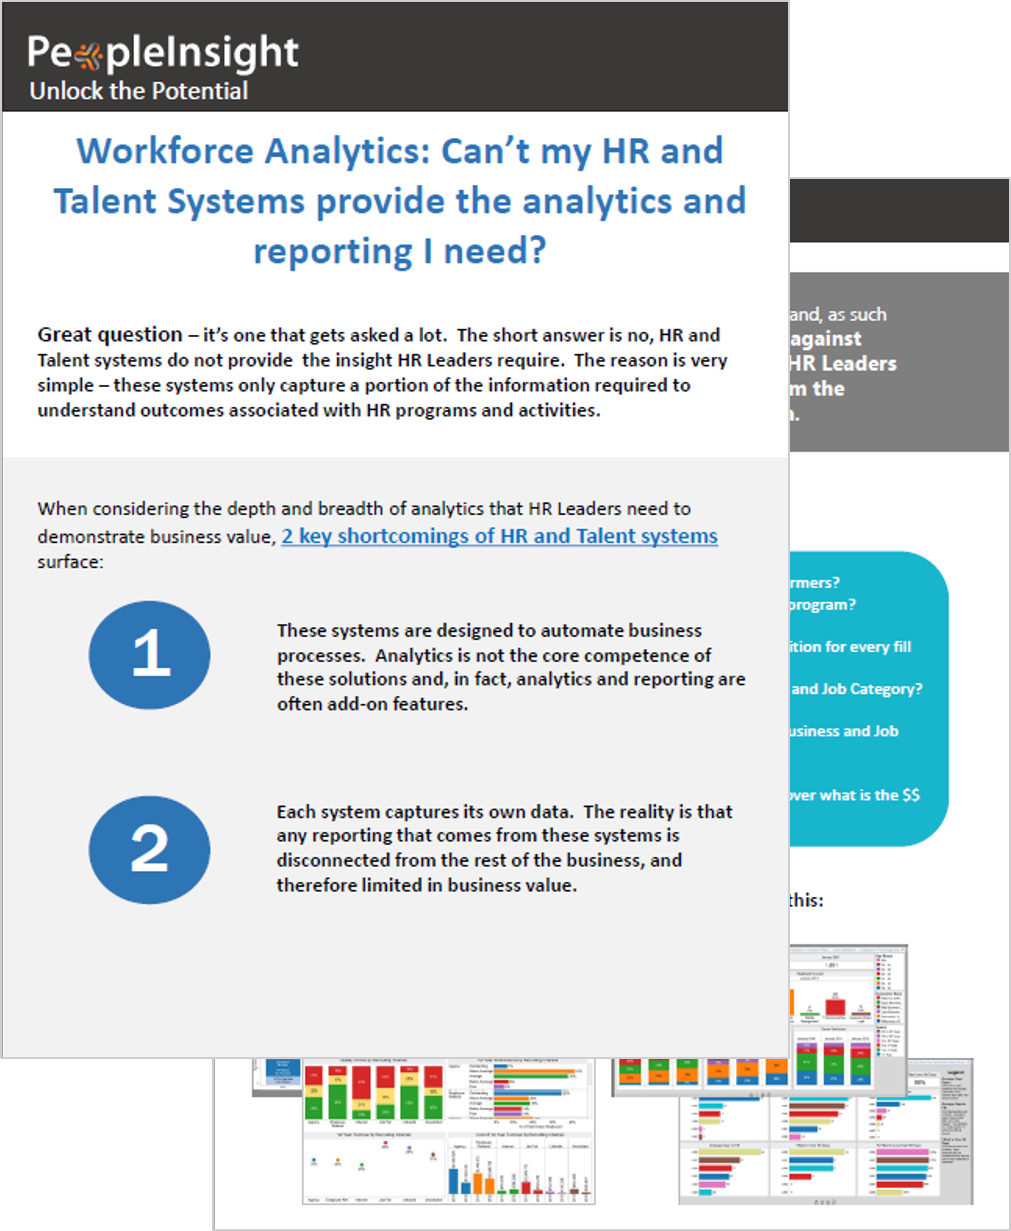 HRIS Analytics and Reporting Shortfalls